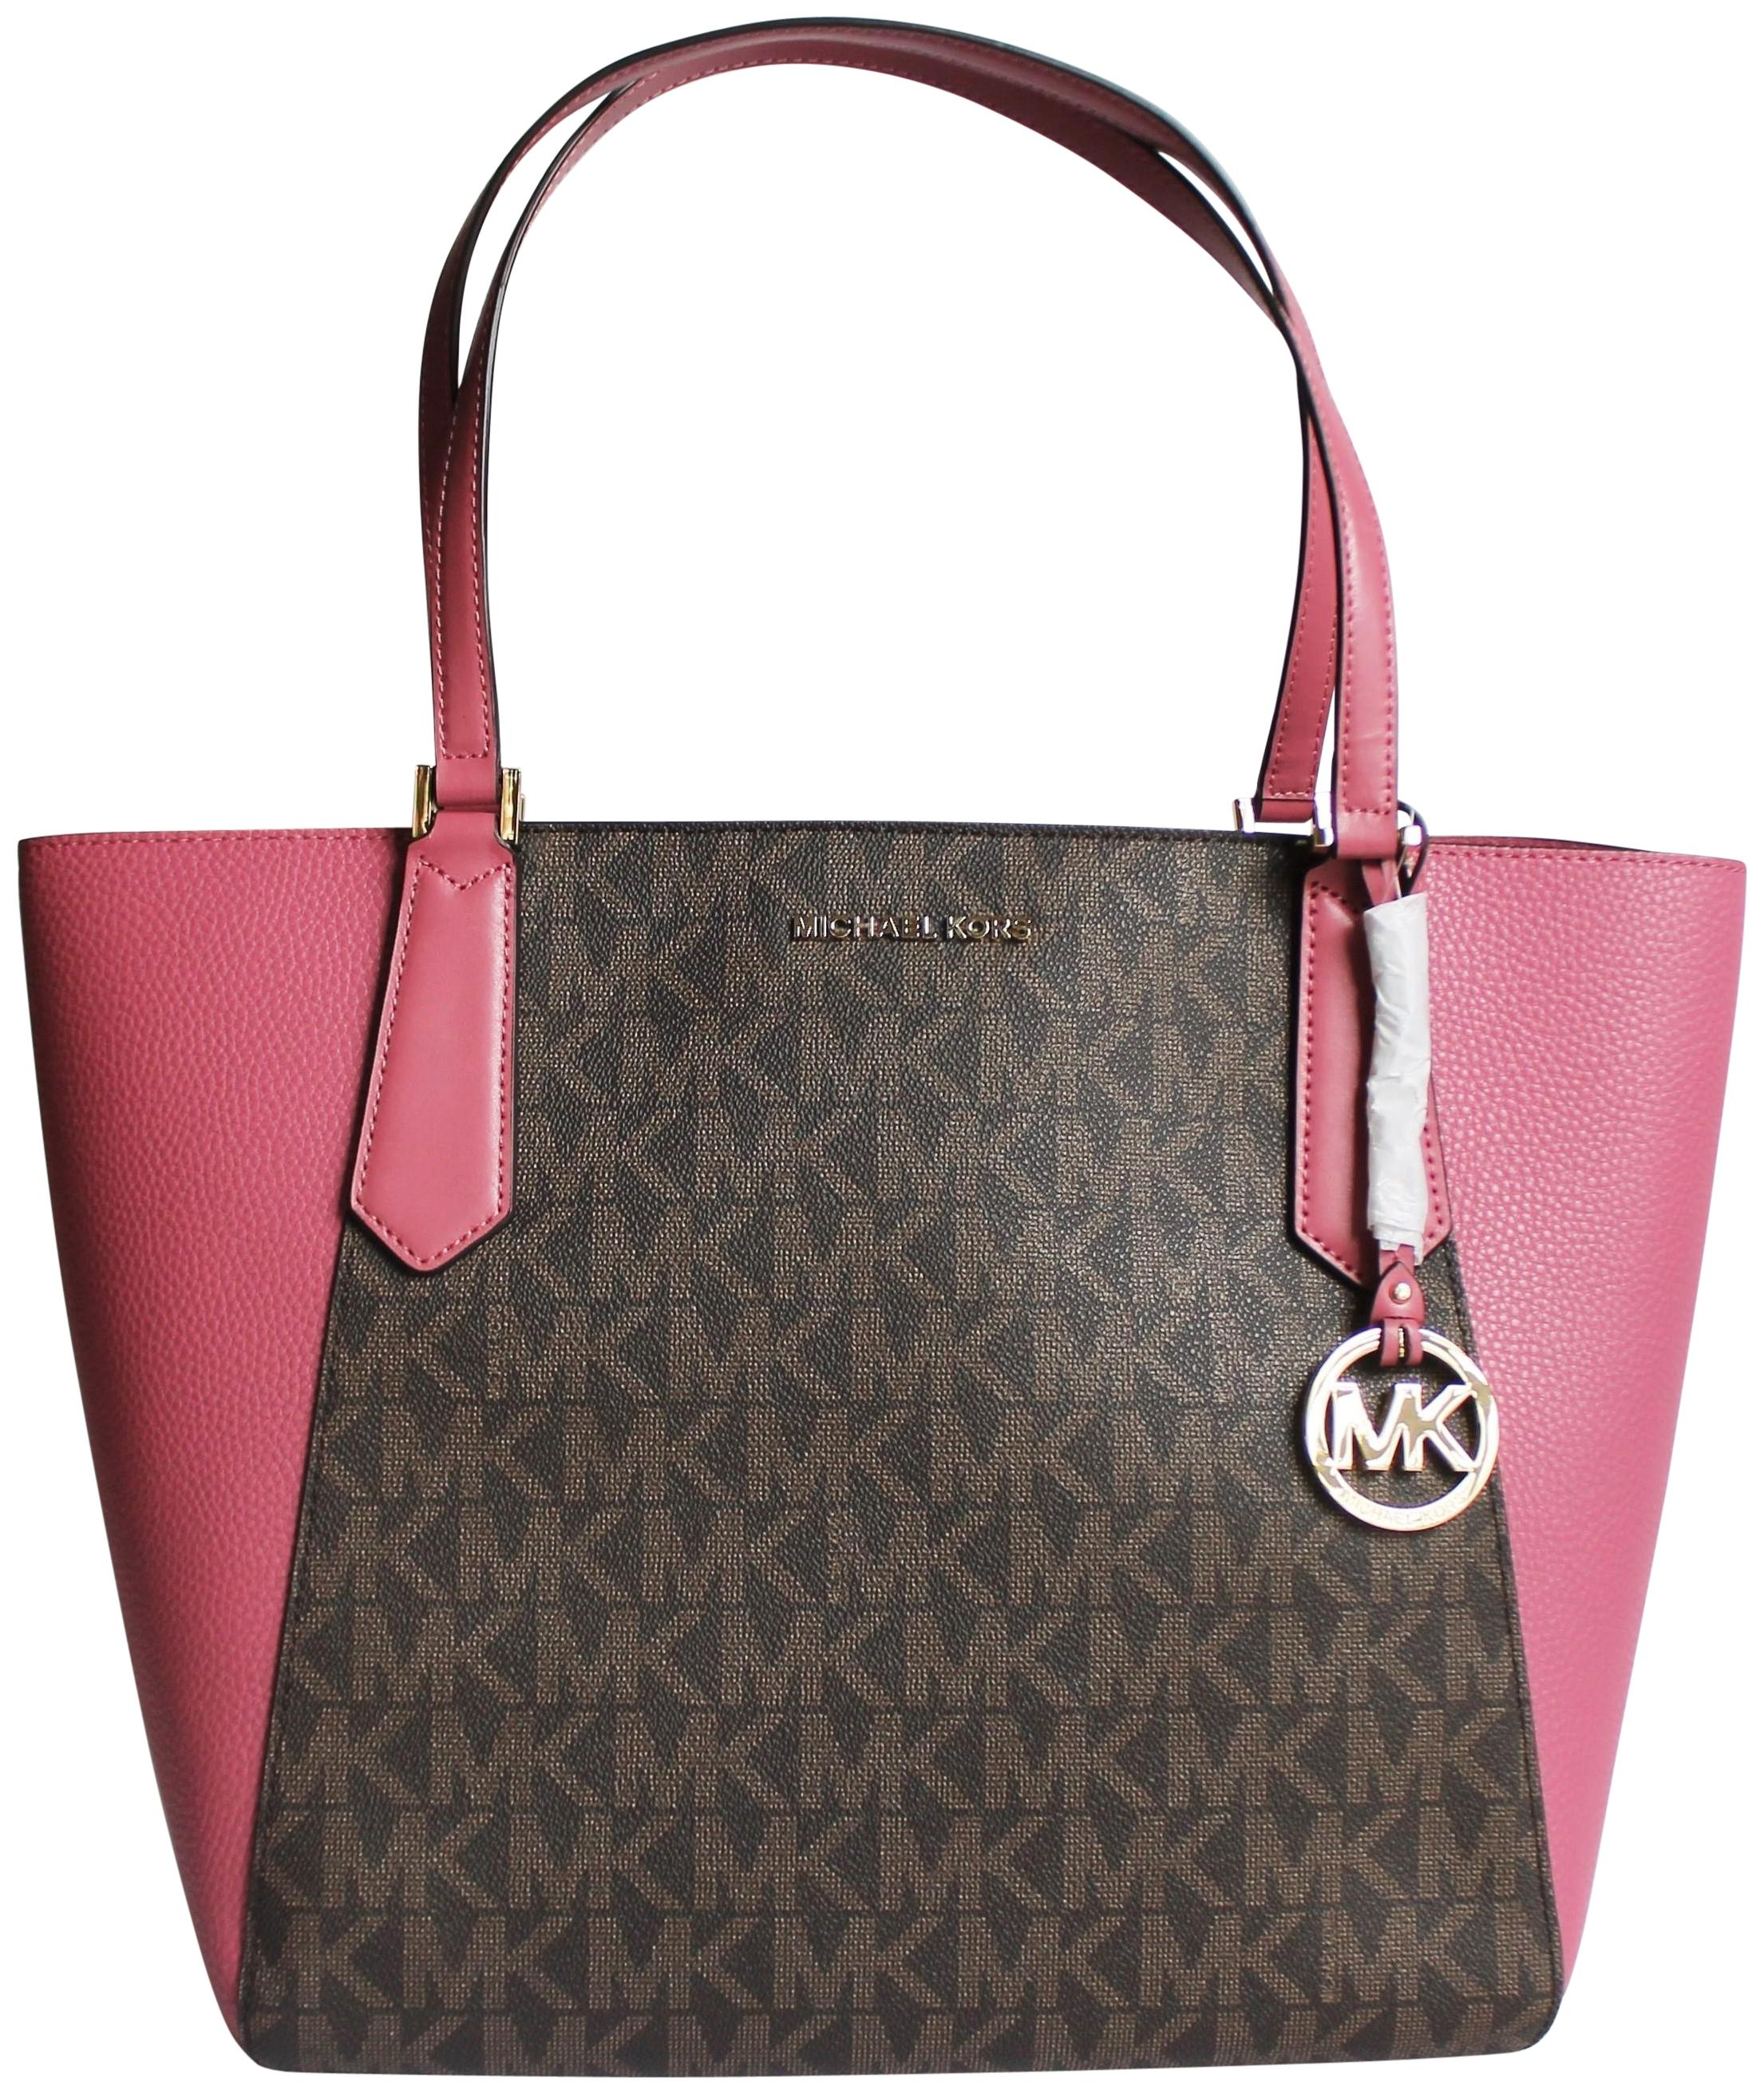 a8835a1a4b12 ... promo code michael kors tote in brown tulip pink 55ddb 4d39a